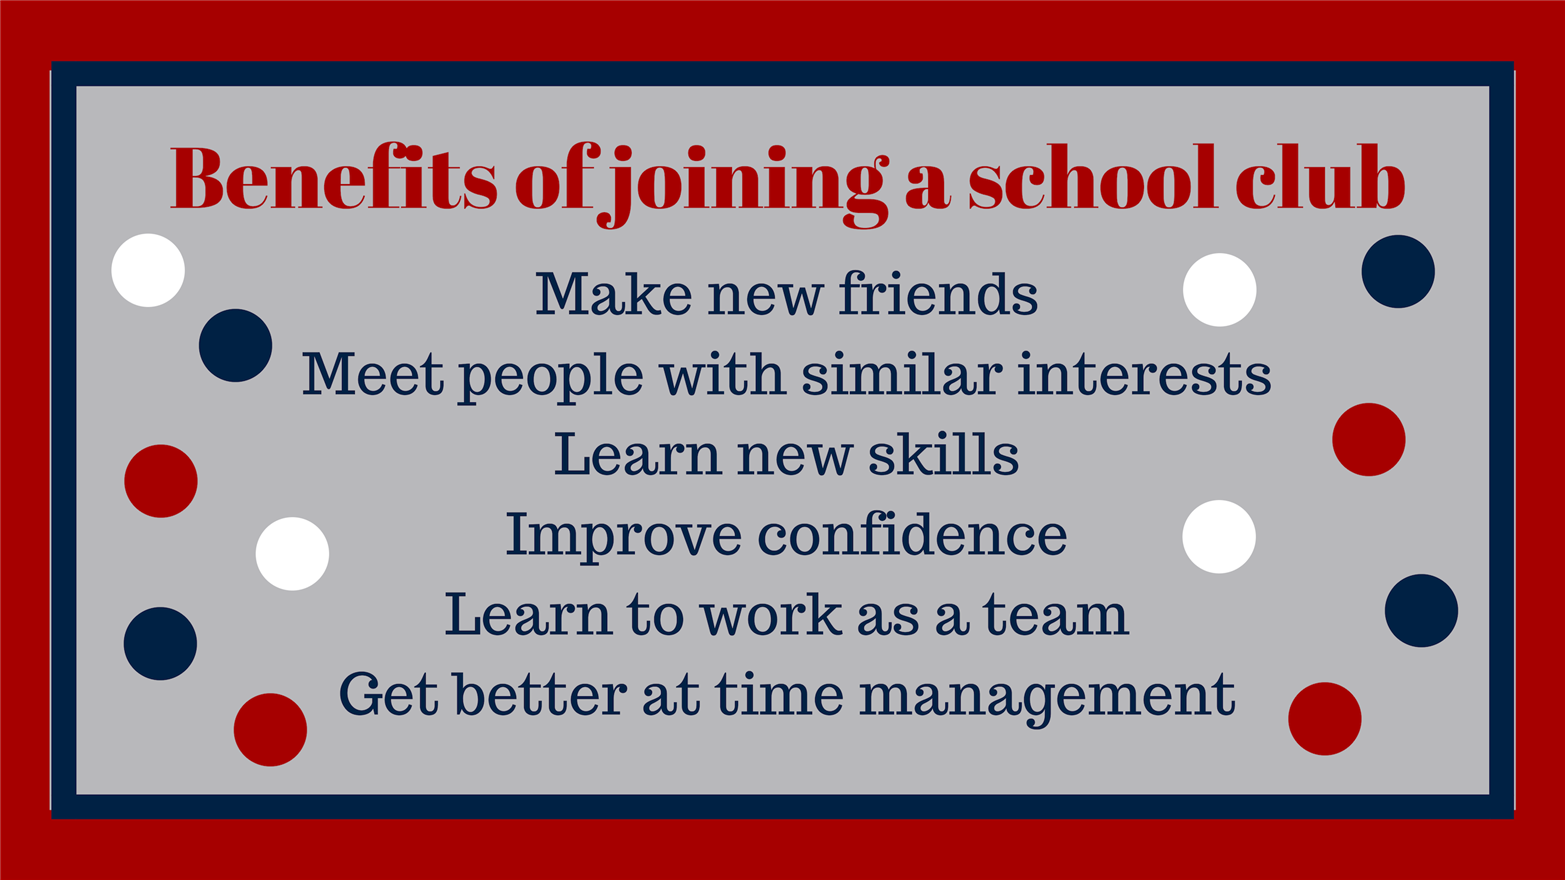 Benefits of joining a school club Make new friends Meet people with similar interests Learn new skills Improve confidence Lea